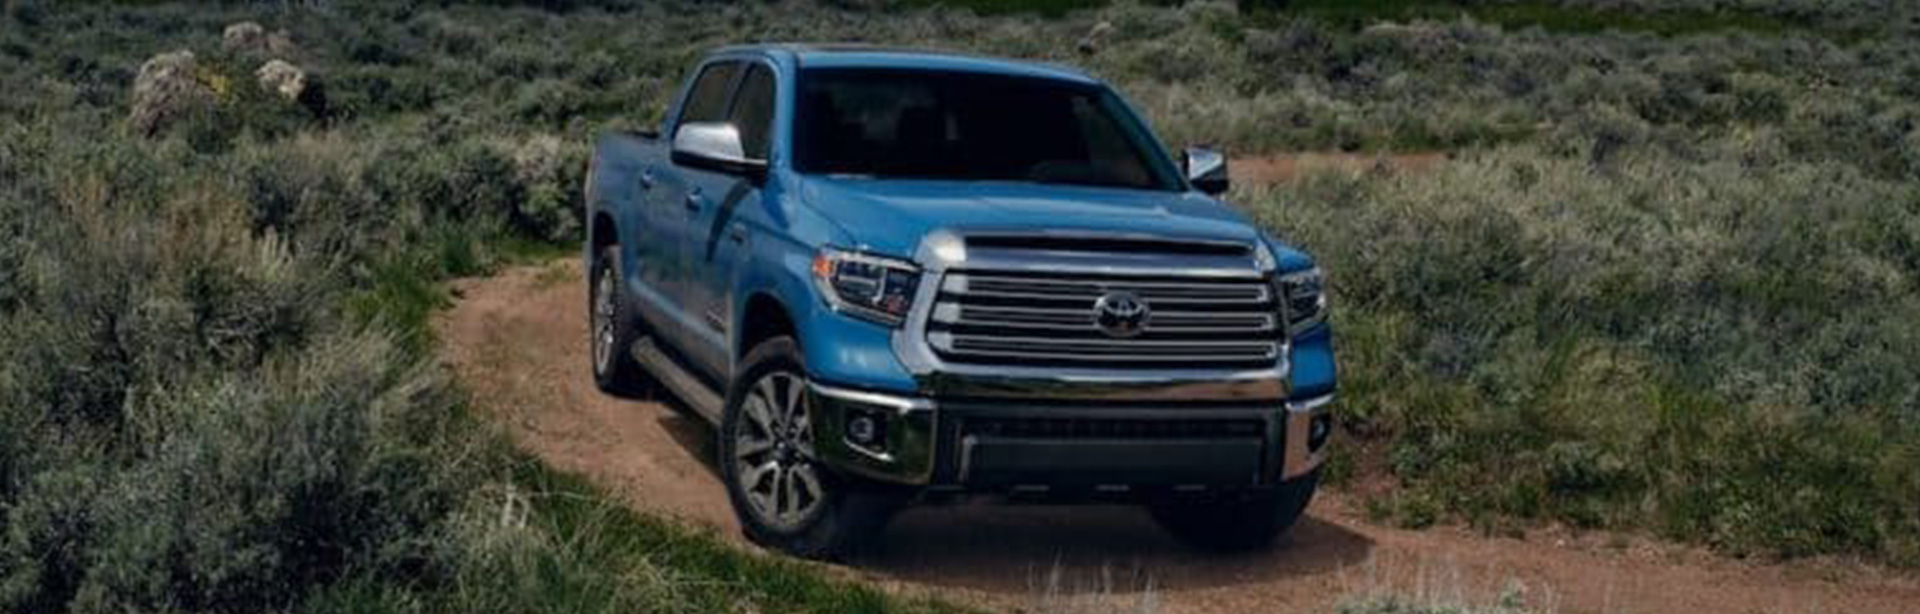 Fred Anderson Toyota Raleigh >> The 2020 Toyota Tundra: Everything You Need to Know ...